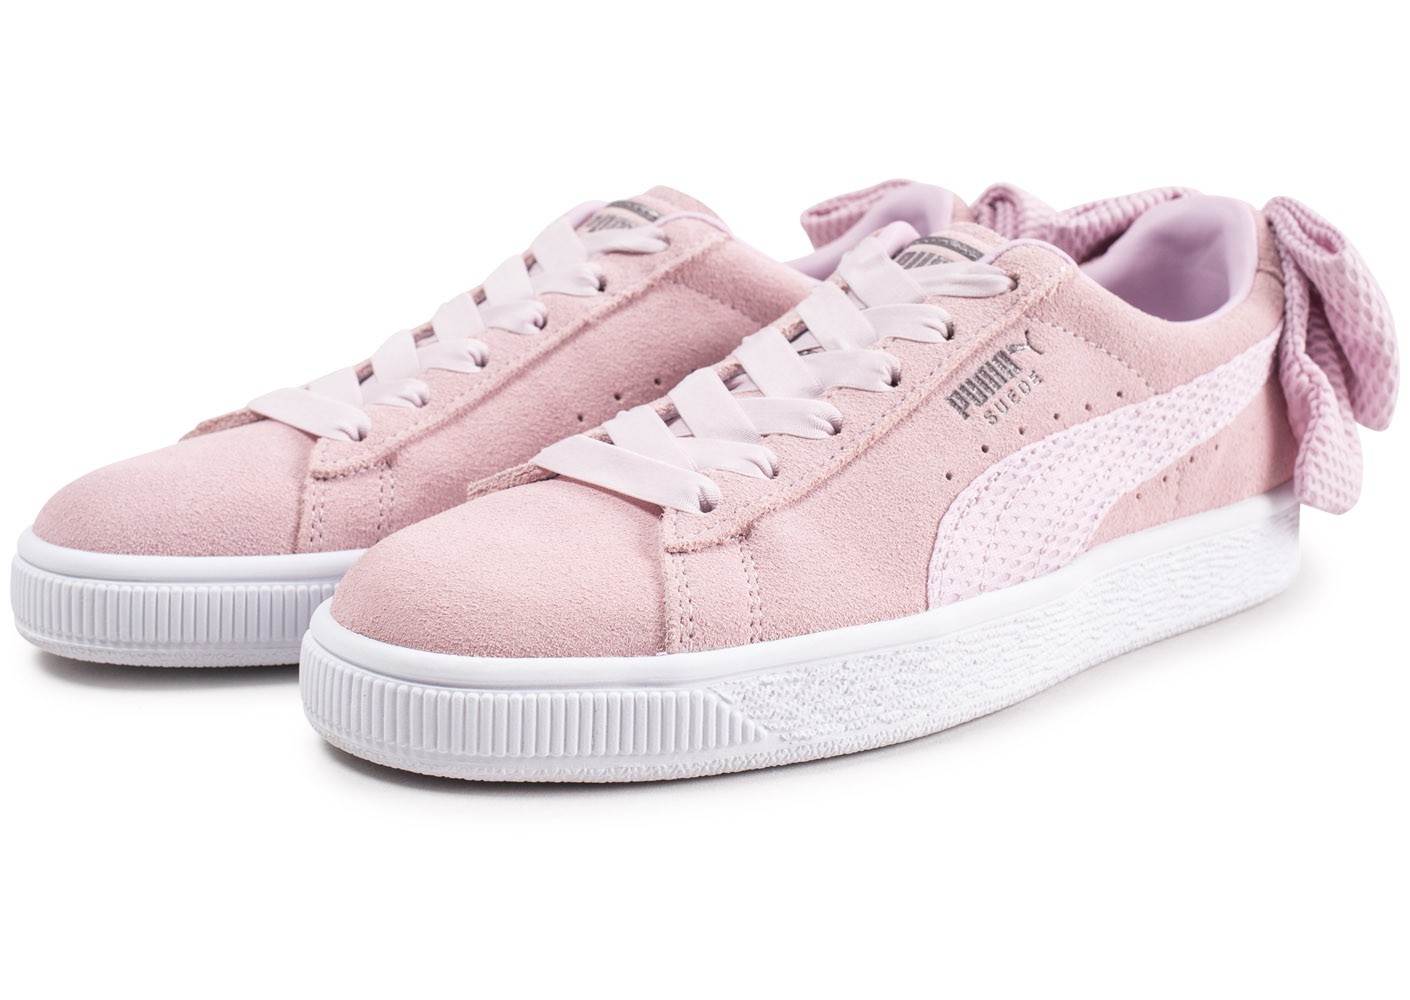 detailed look cdbd9 5da1d 13388-chaussures-puma-suede-bow-uprisnig-rose-femme-vue-avant.jpg